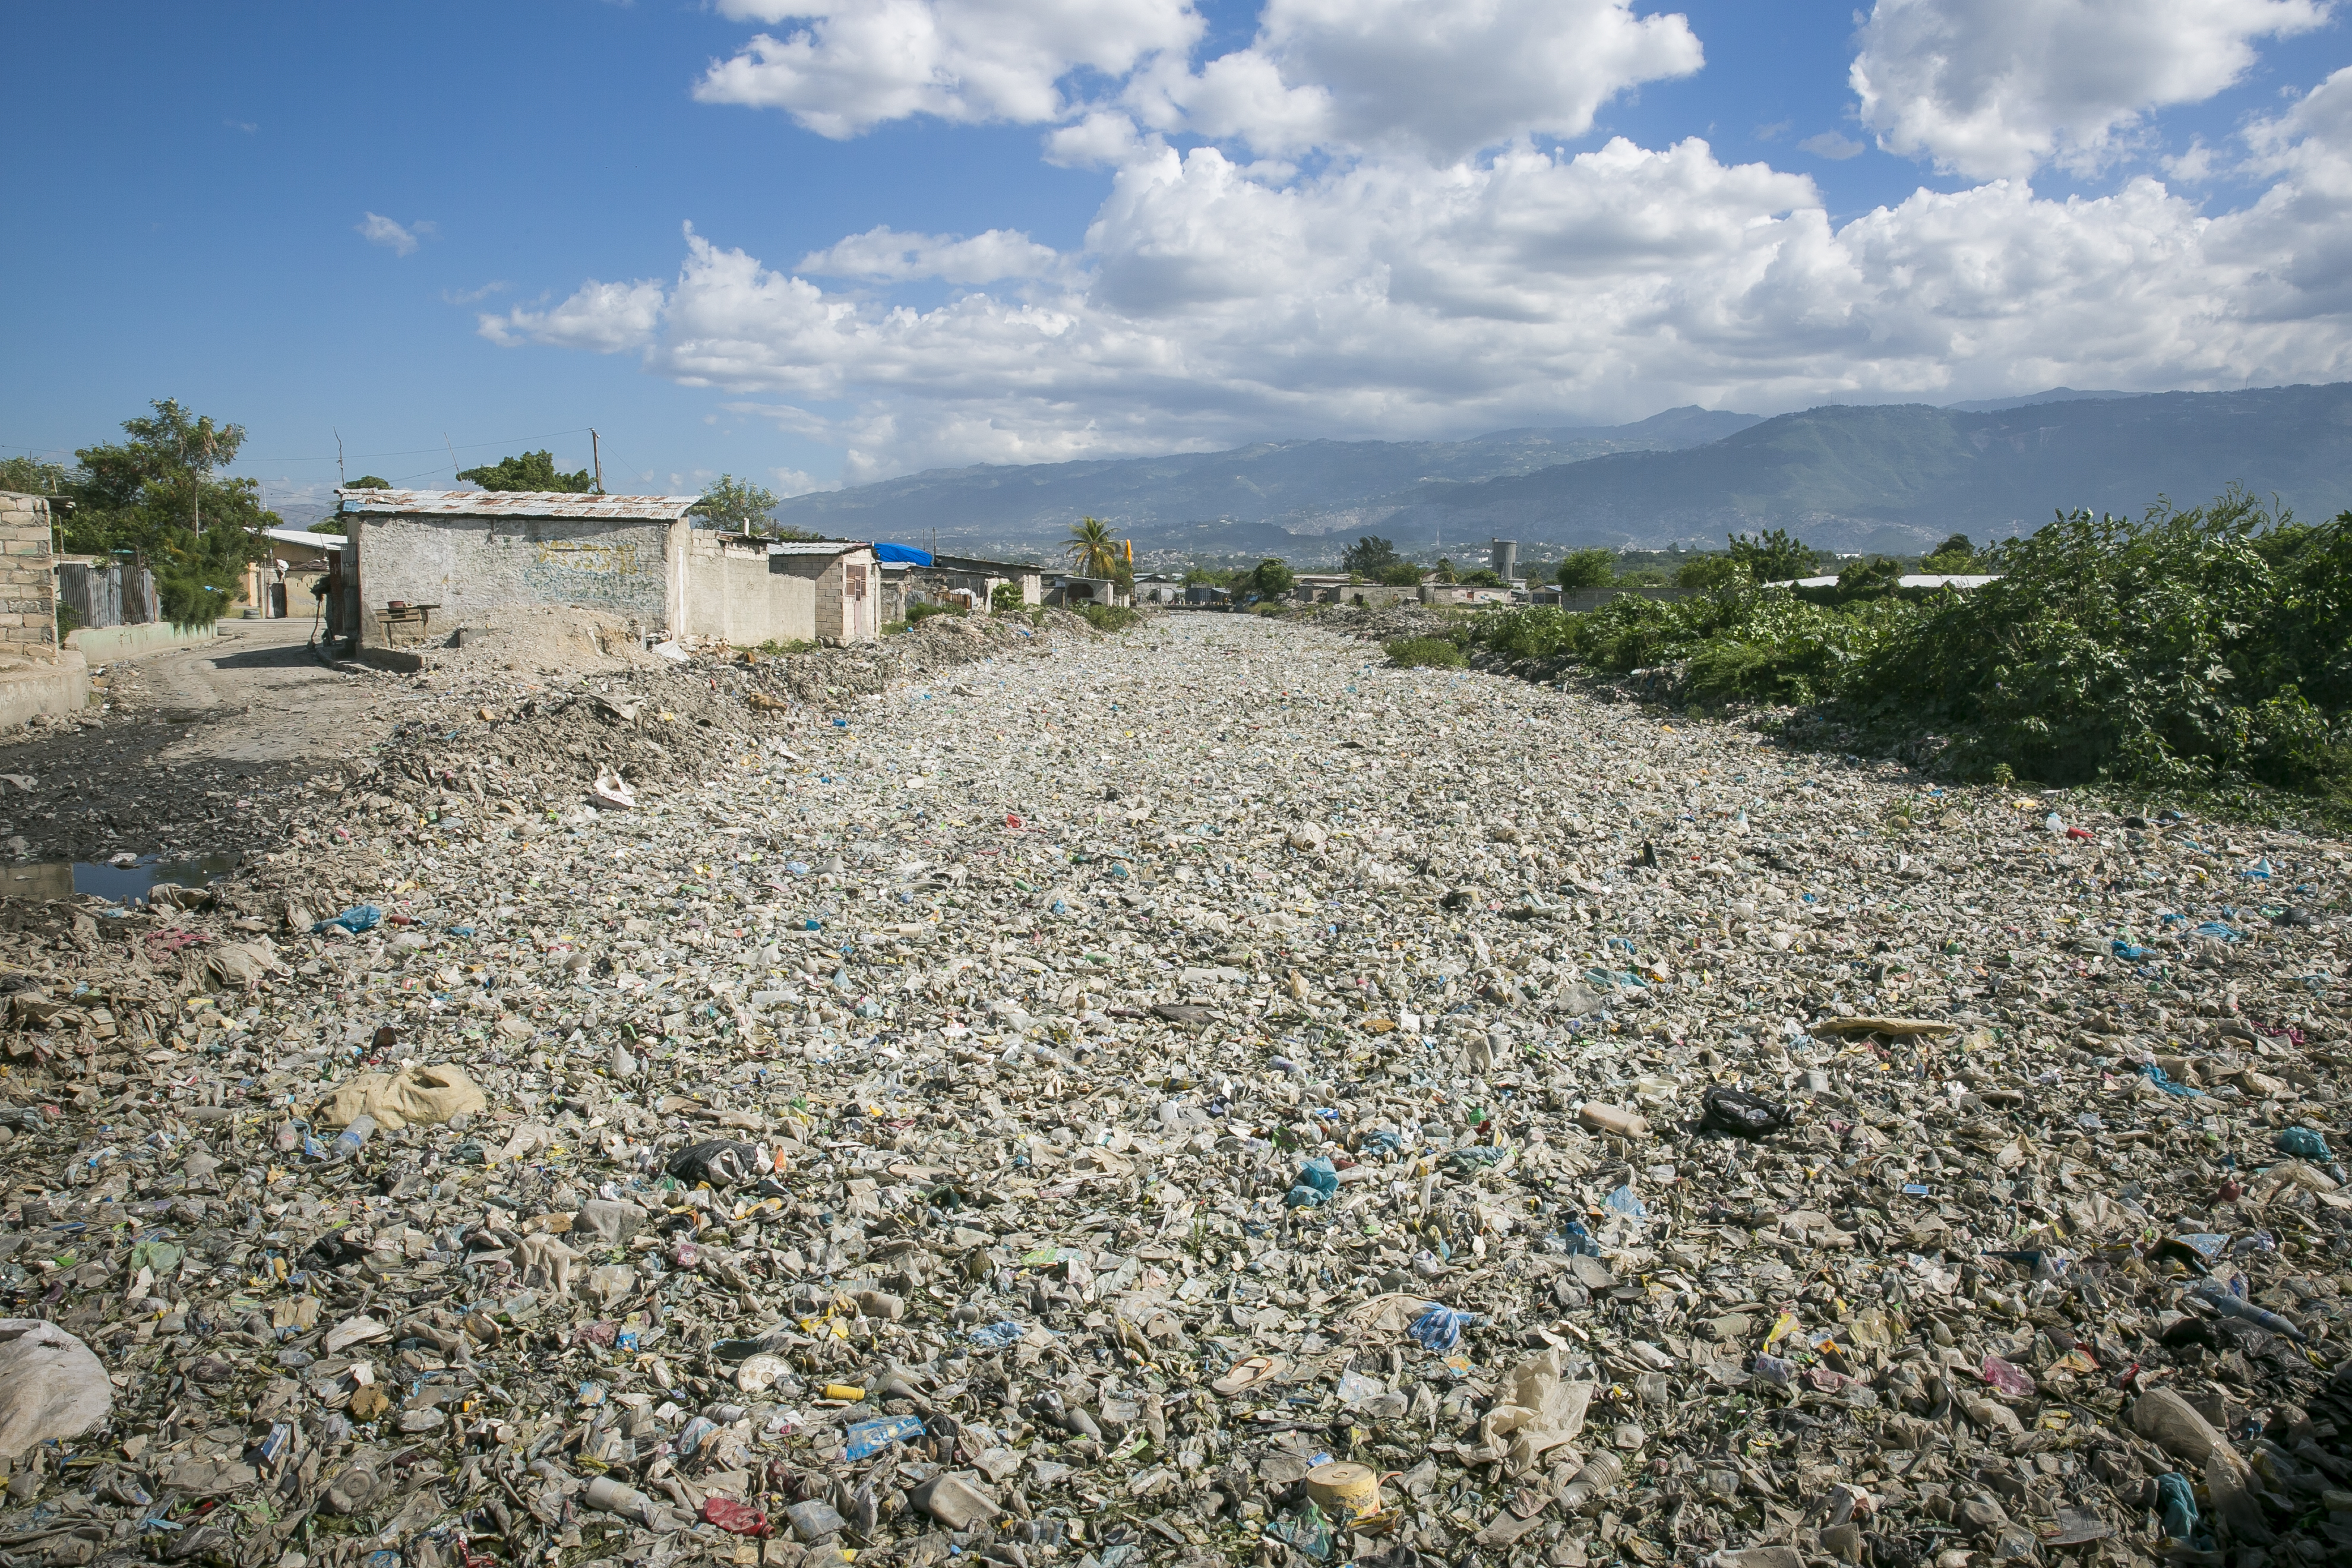 Plastic waste in a waterway in Port au Prince, Haiti.